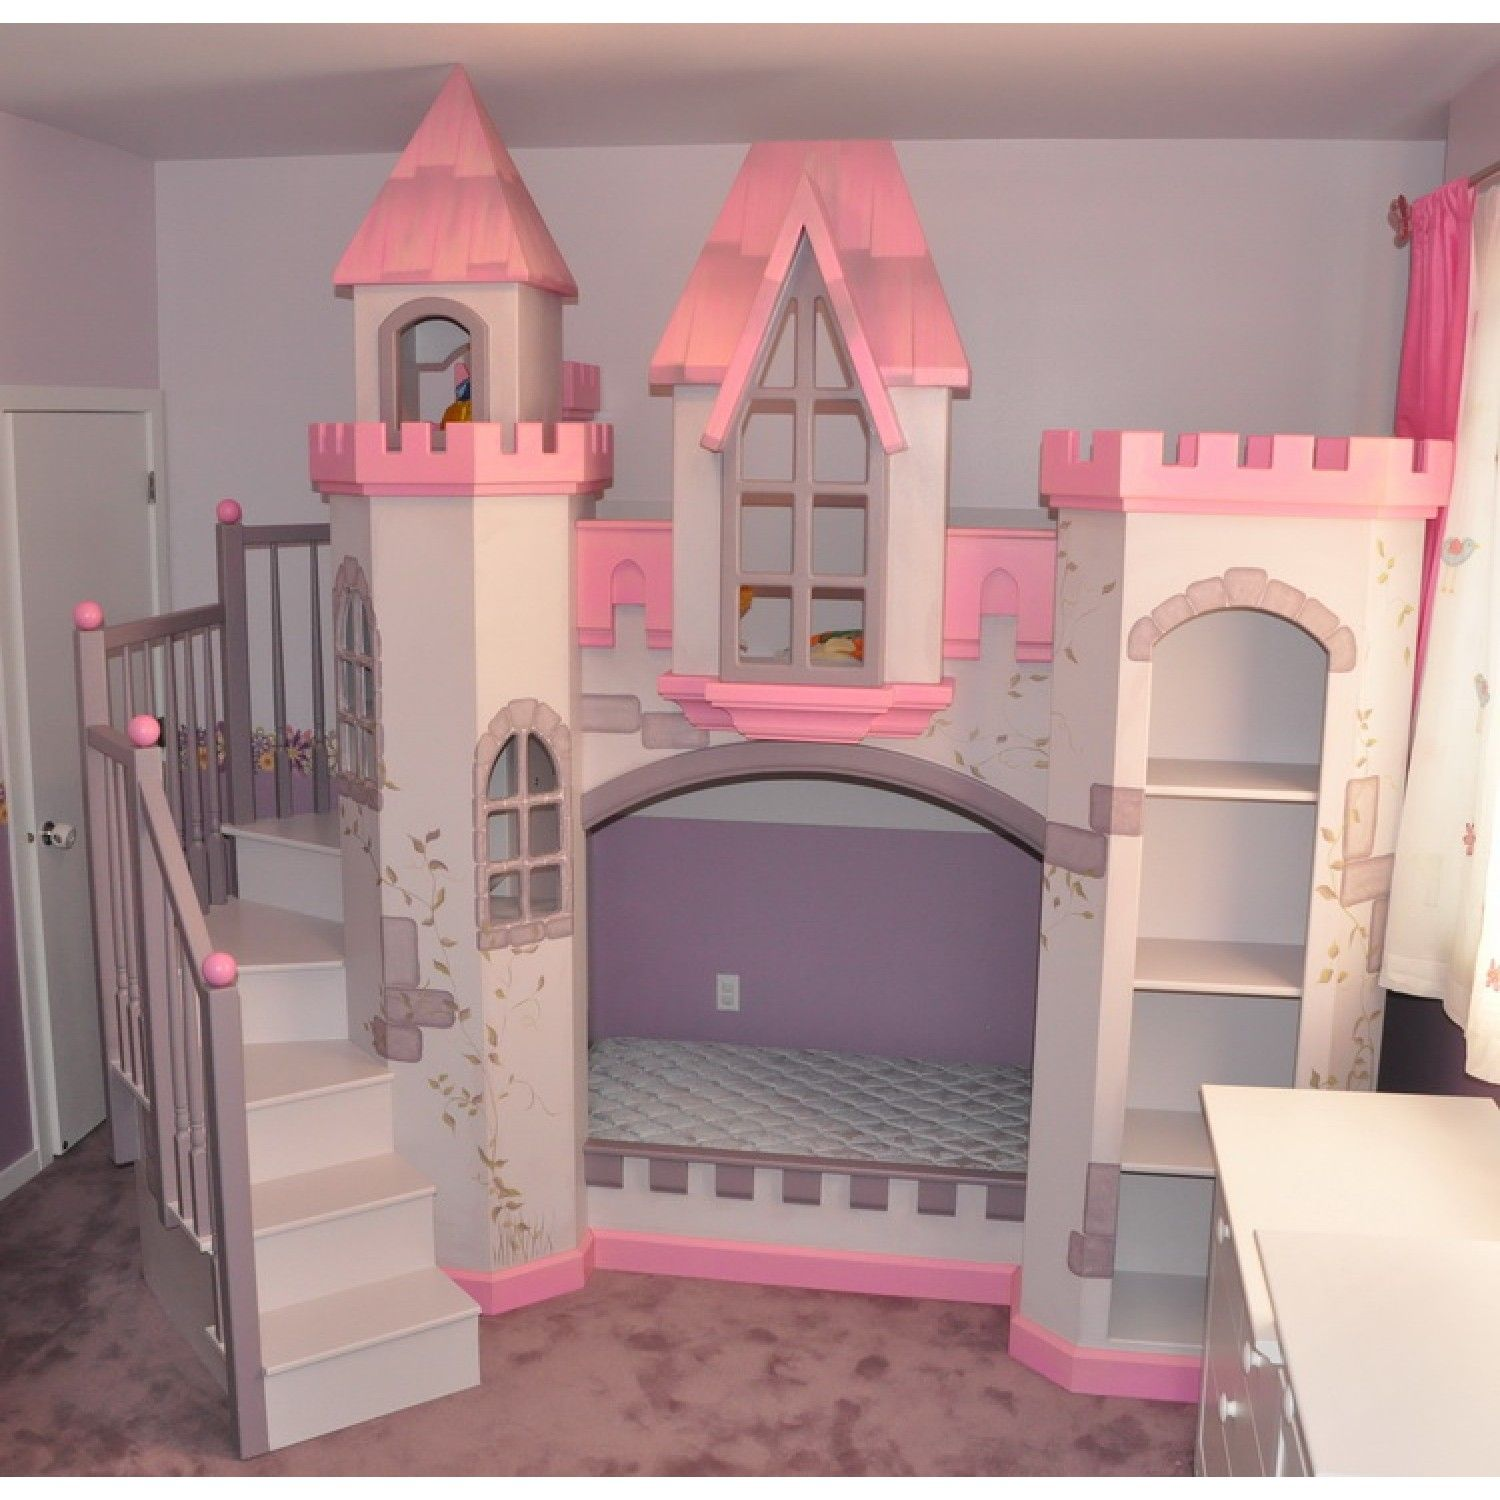 Bedroom furniture for girls castle - Bunk Bed